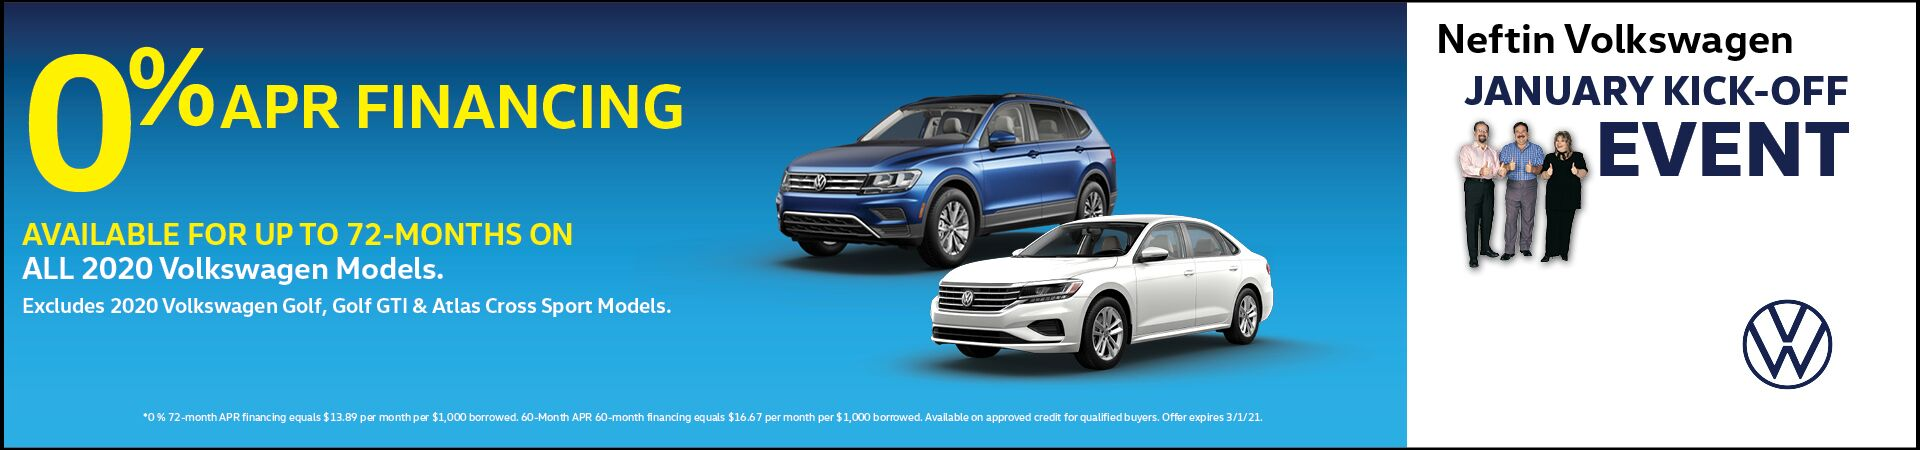 January '21 0% APR Financing Offer